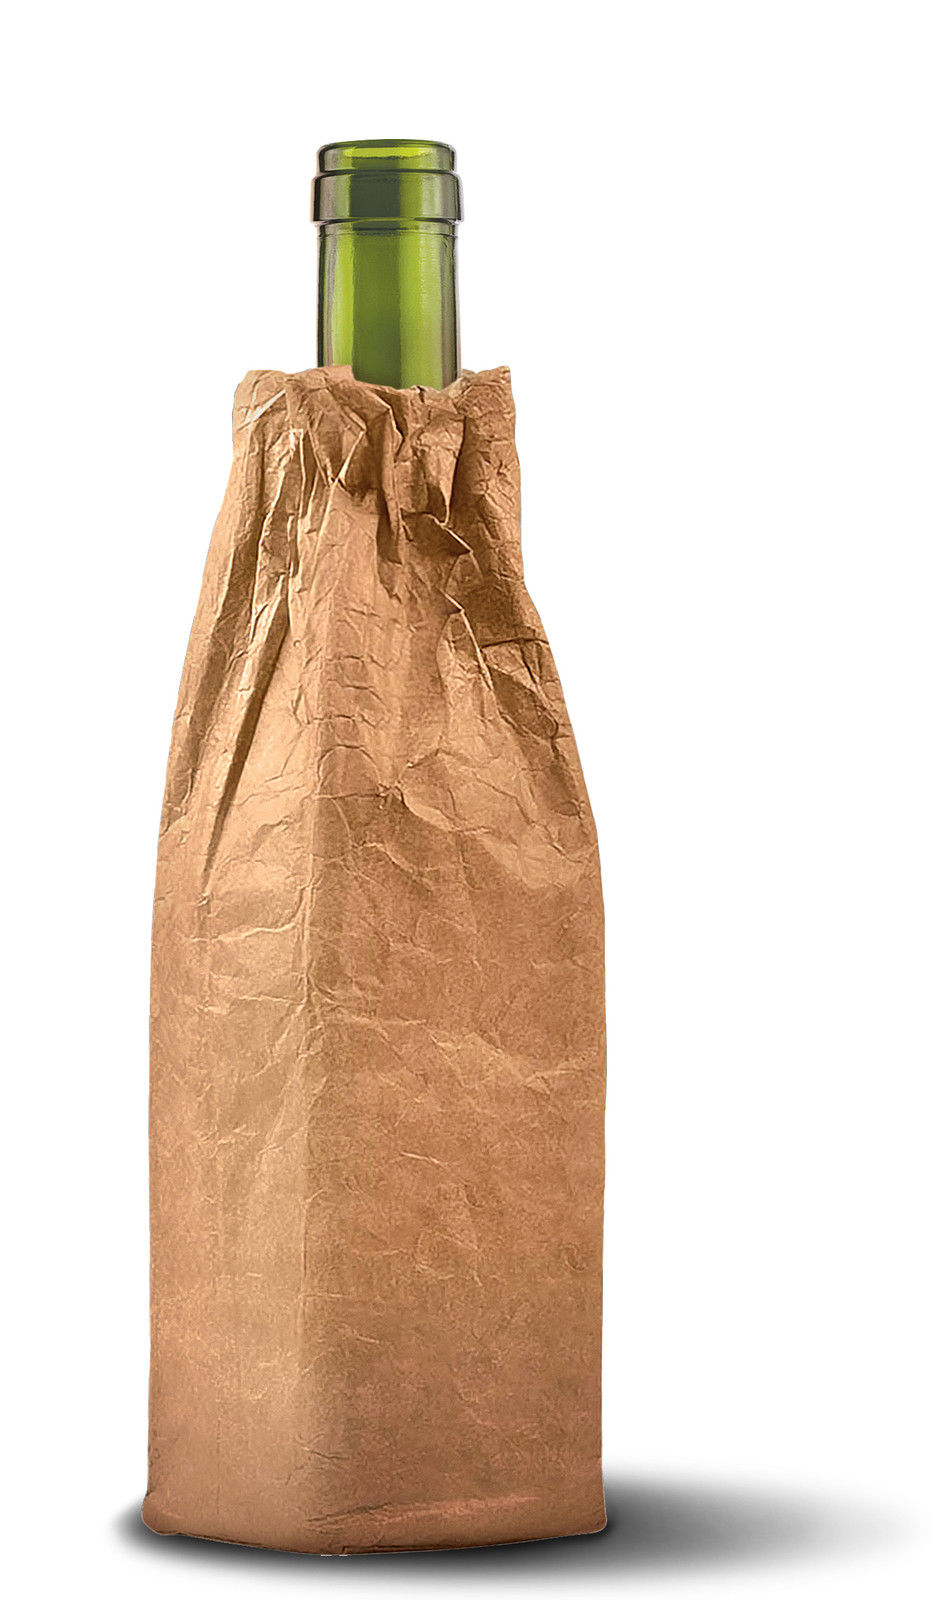 Dj Wallpaper Hd moreover Top Ten Cool Things To Make With Paper Clips moreover Koverupz Bag Insulated Wine Bottle Cooler Brown Bag furthermore 222114393567 also Music. on design paper musical instruments